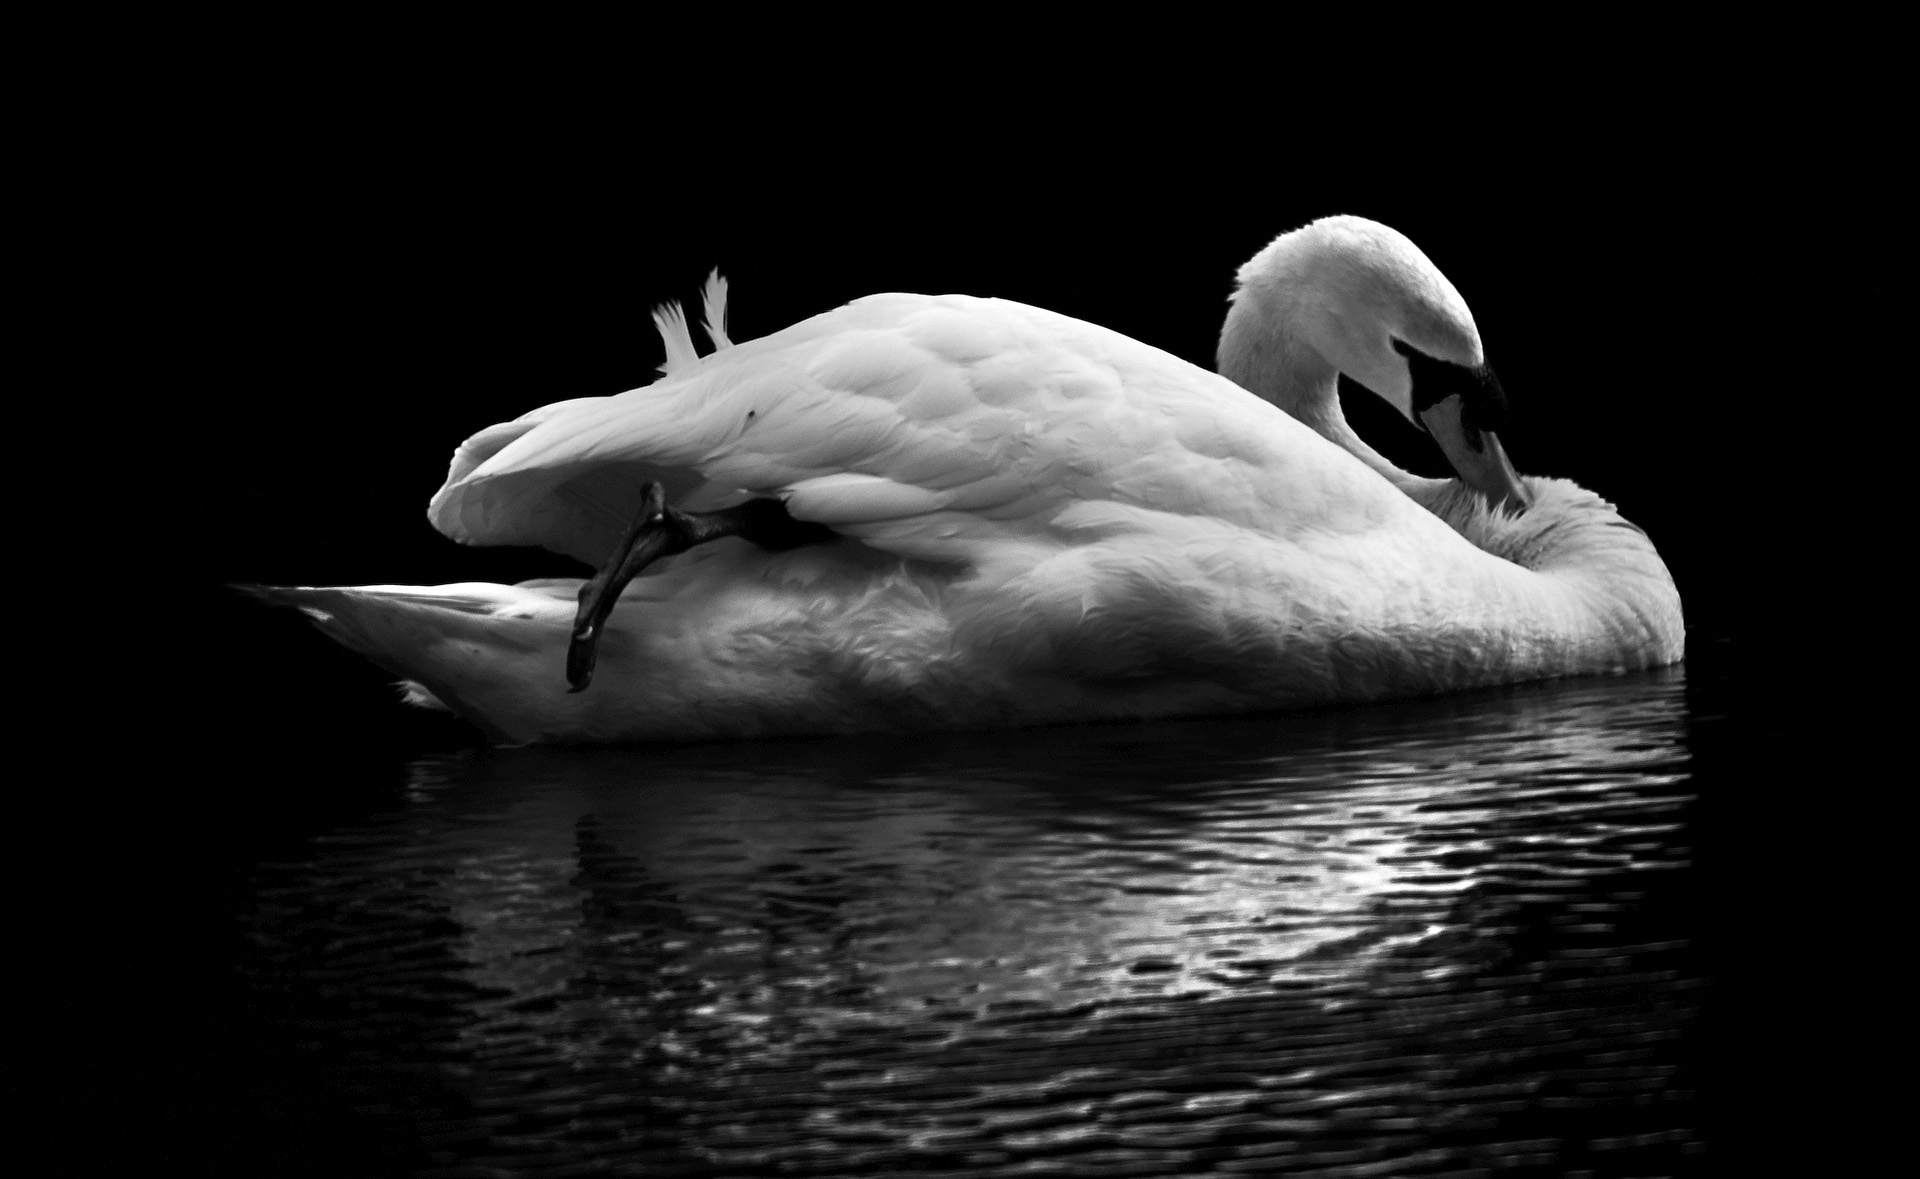 the white and black swan mirror